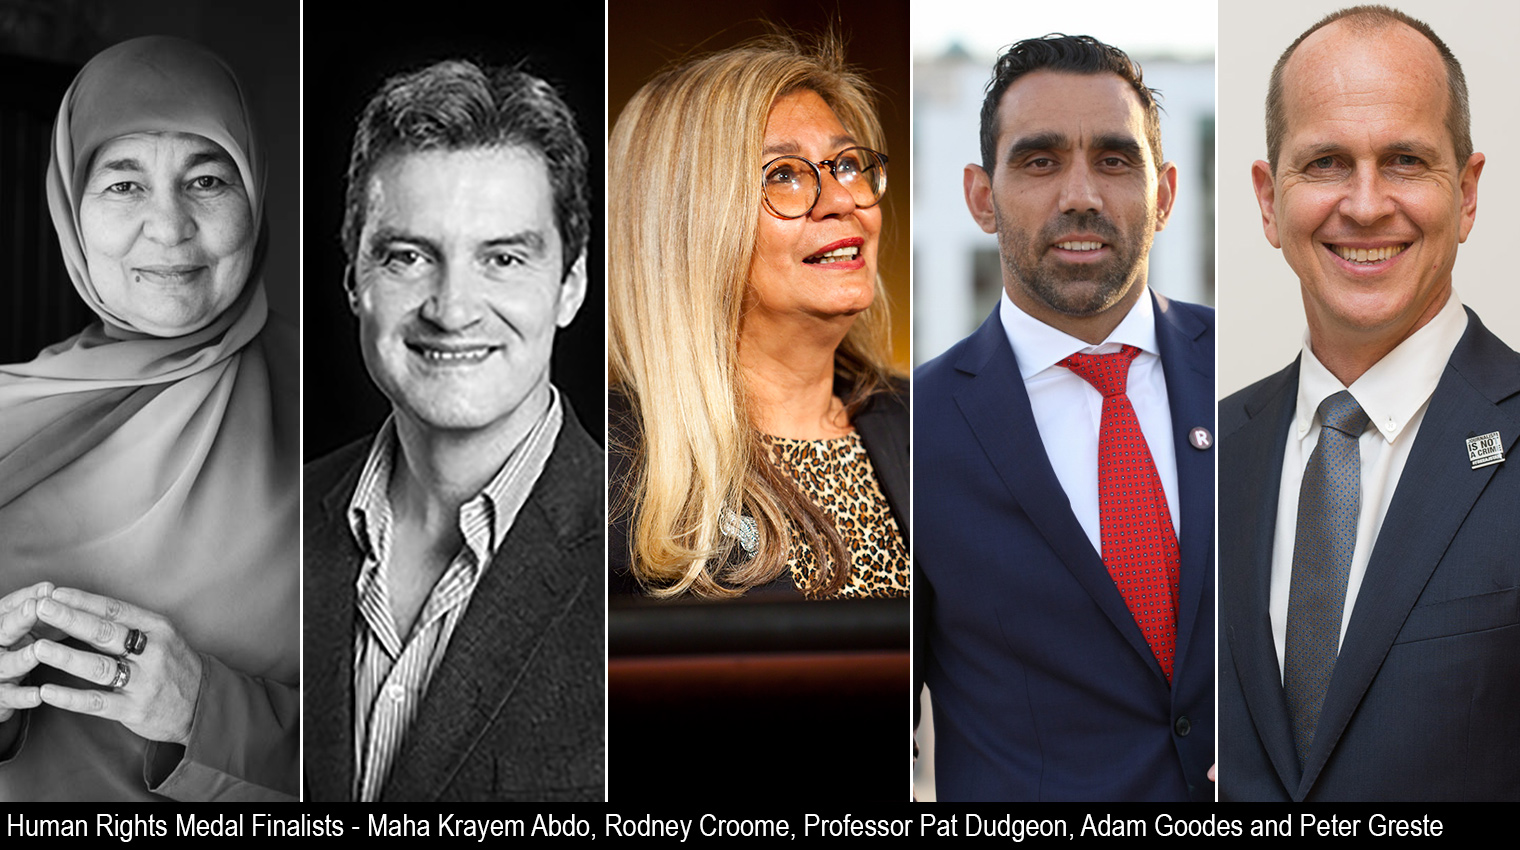 Human Rights Medal Finalists - Maha Krayem Abdo, Rodney Croome, Professor Pat Dudgeon, Adam Goodes and Peter Greste